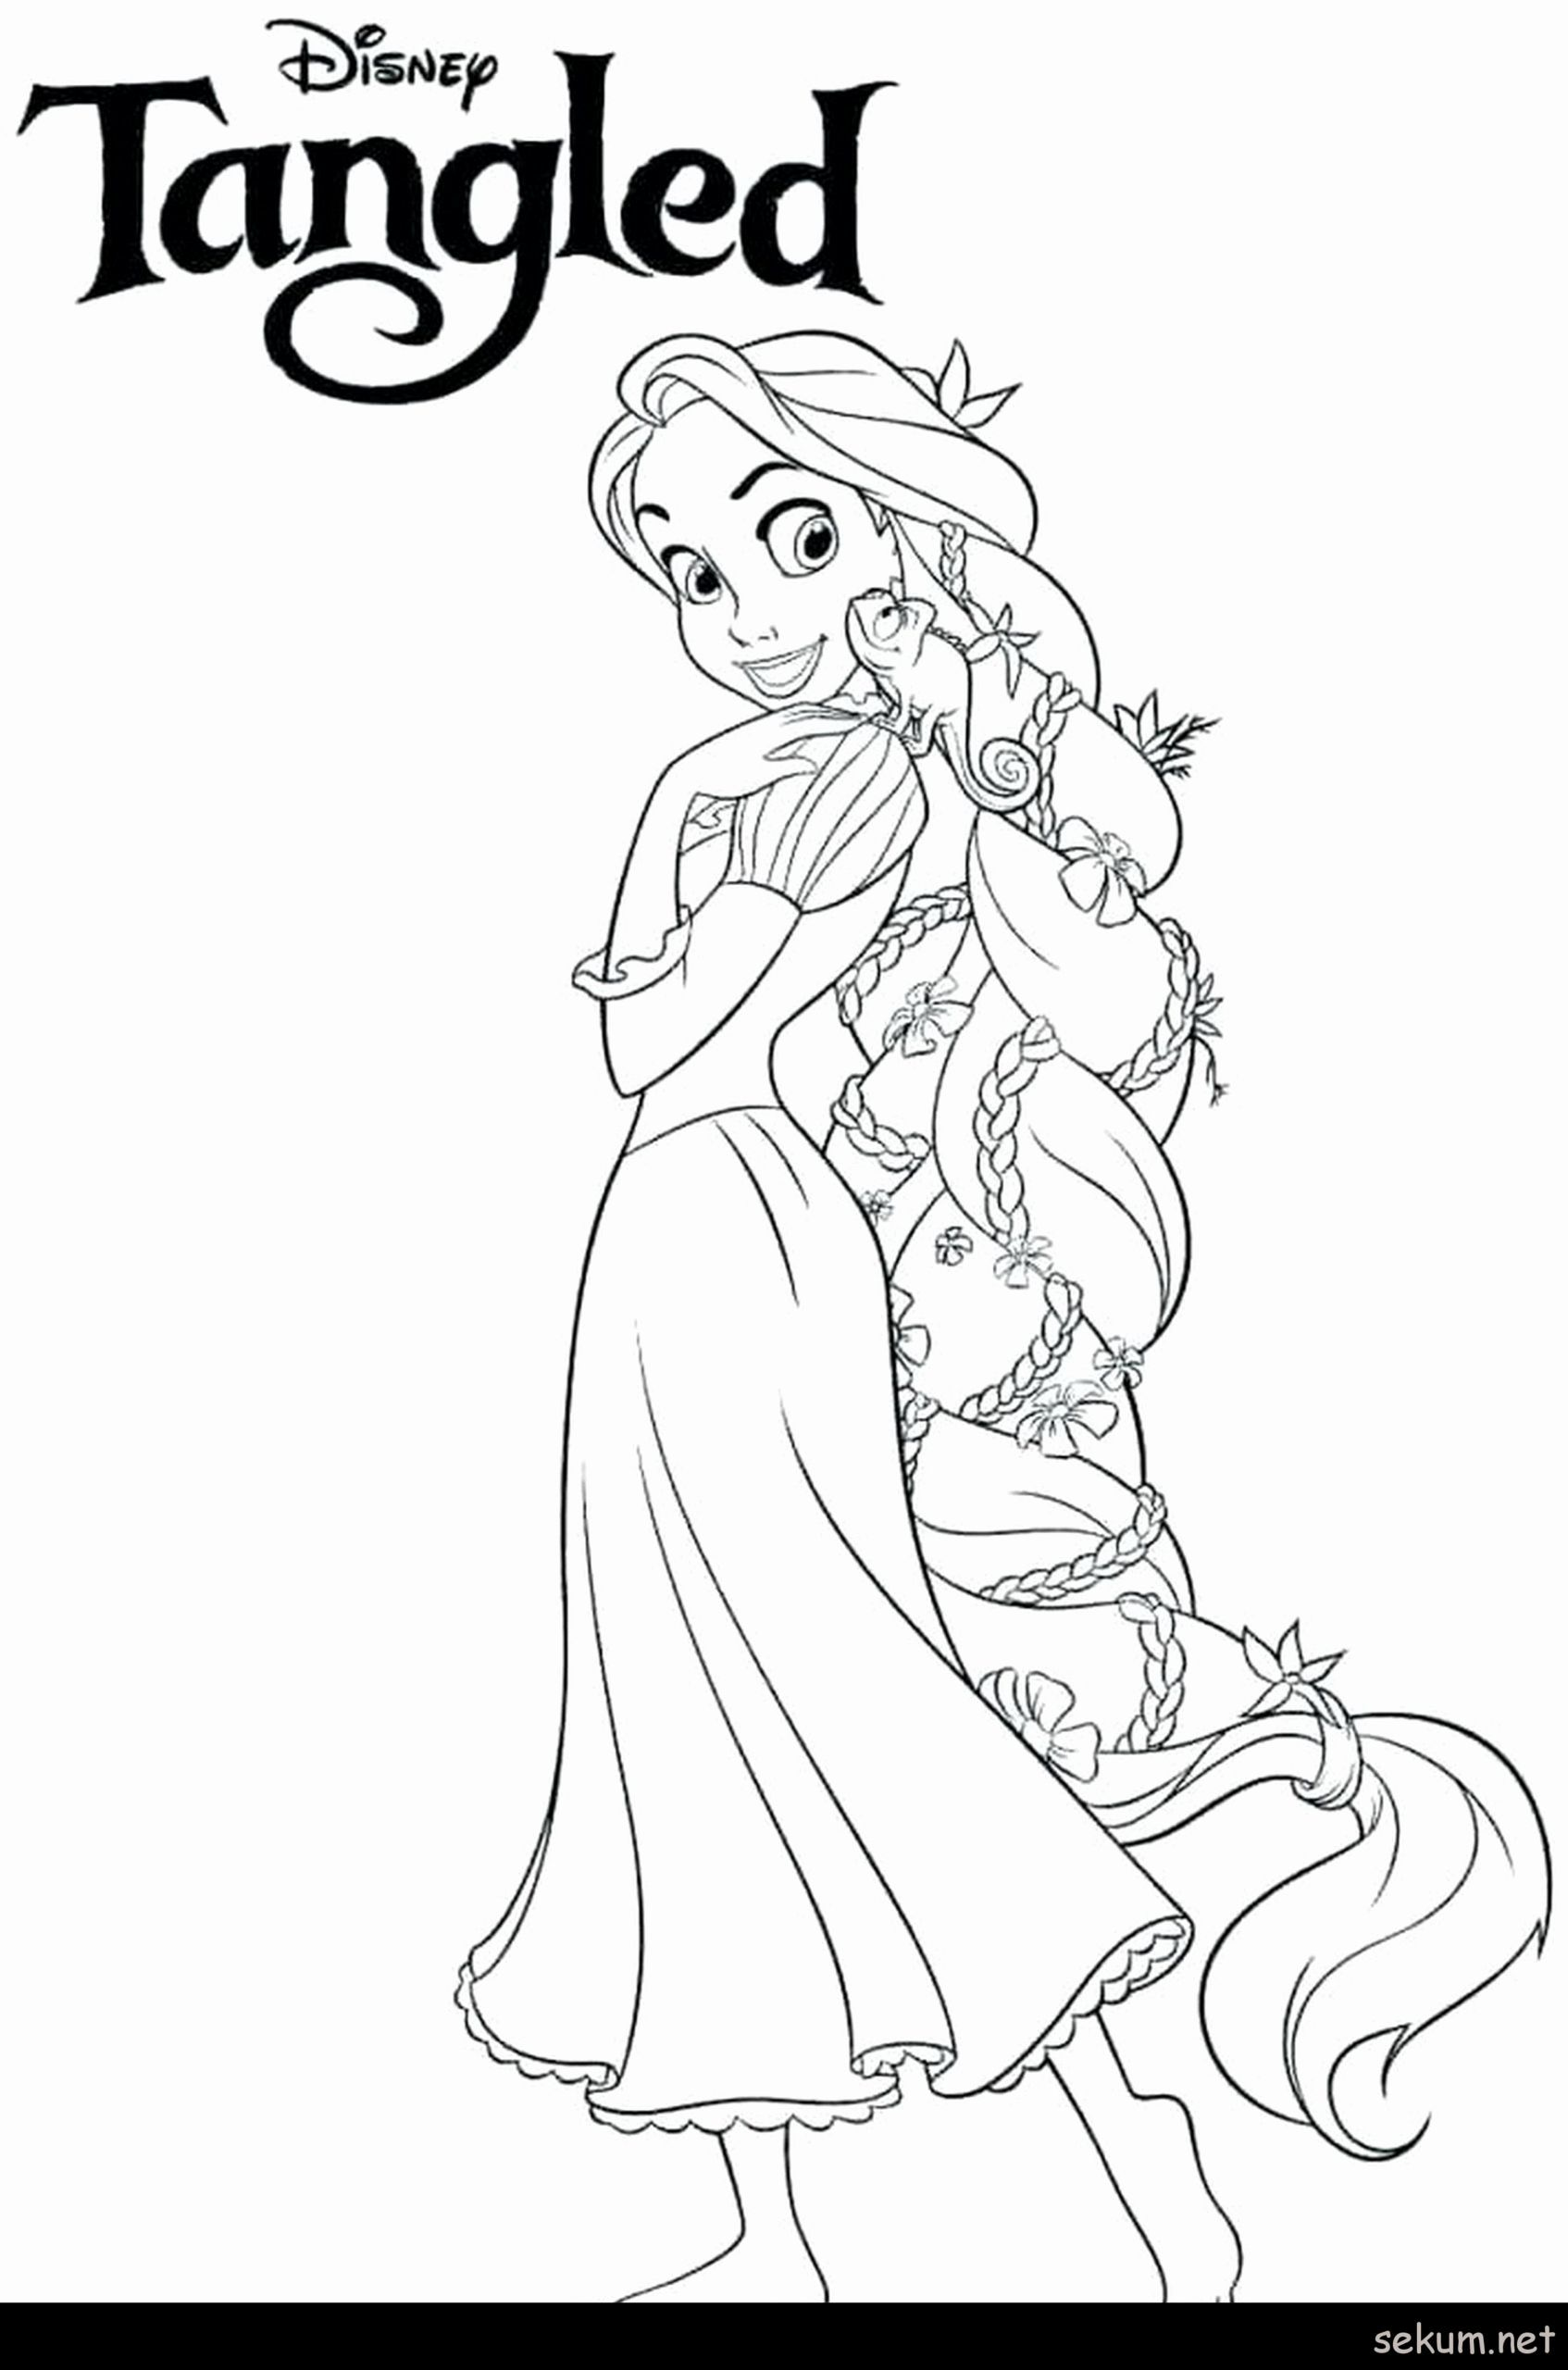 Complex Printable Coloring Pages For Kids Disney Princesses Coloring Pages For Kids Tangled Coloring Pages Disney Coloring Sheets Free Disney Coloring Pages